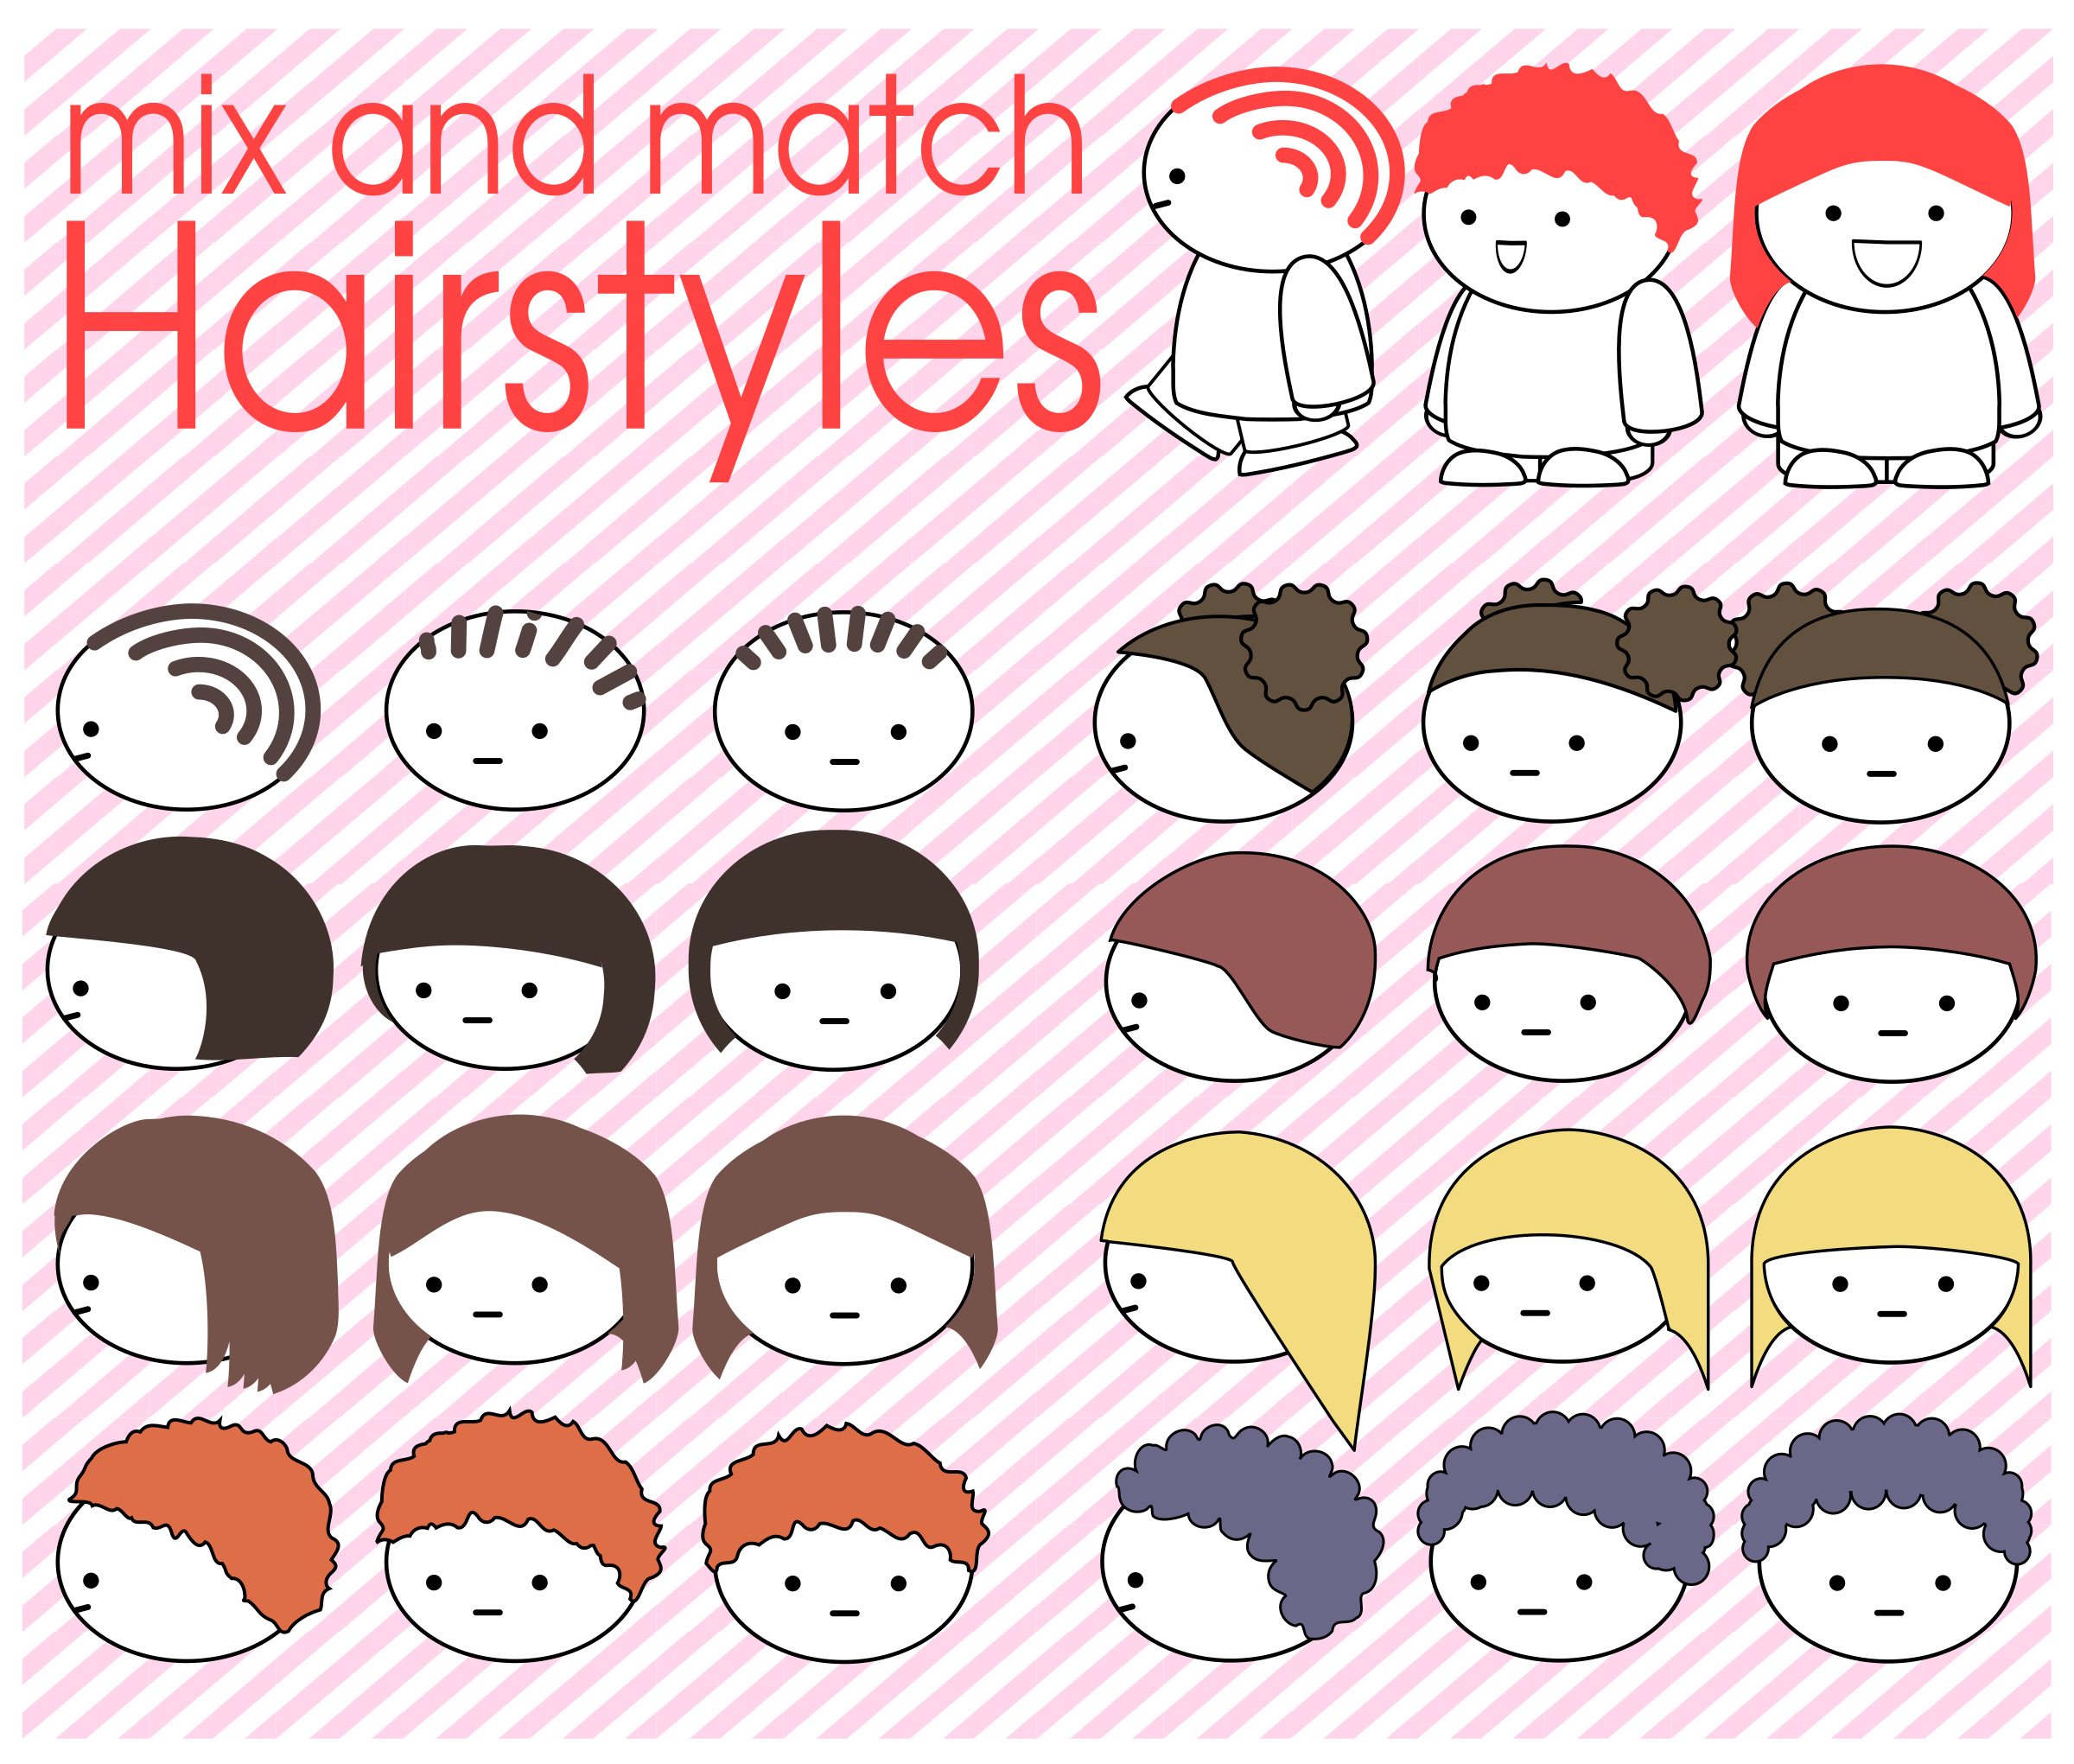 Mix and match hairstyles by anarres